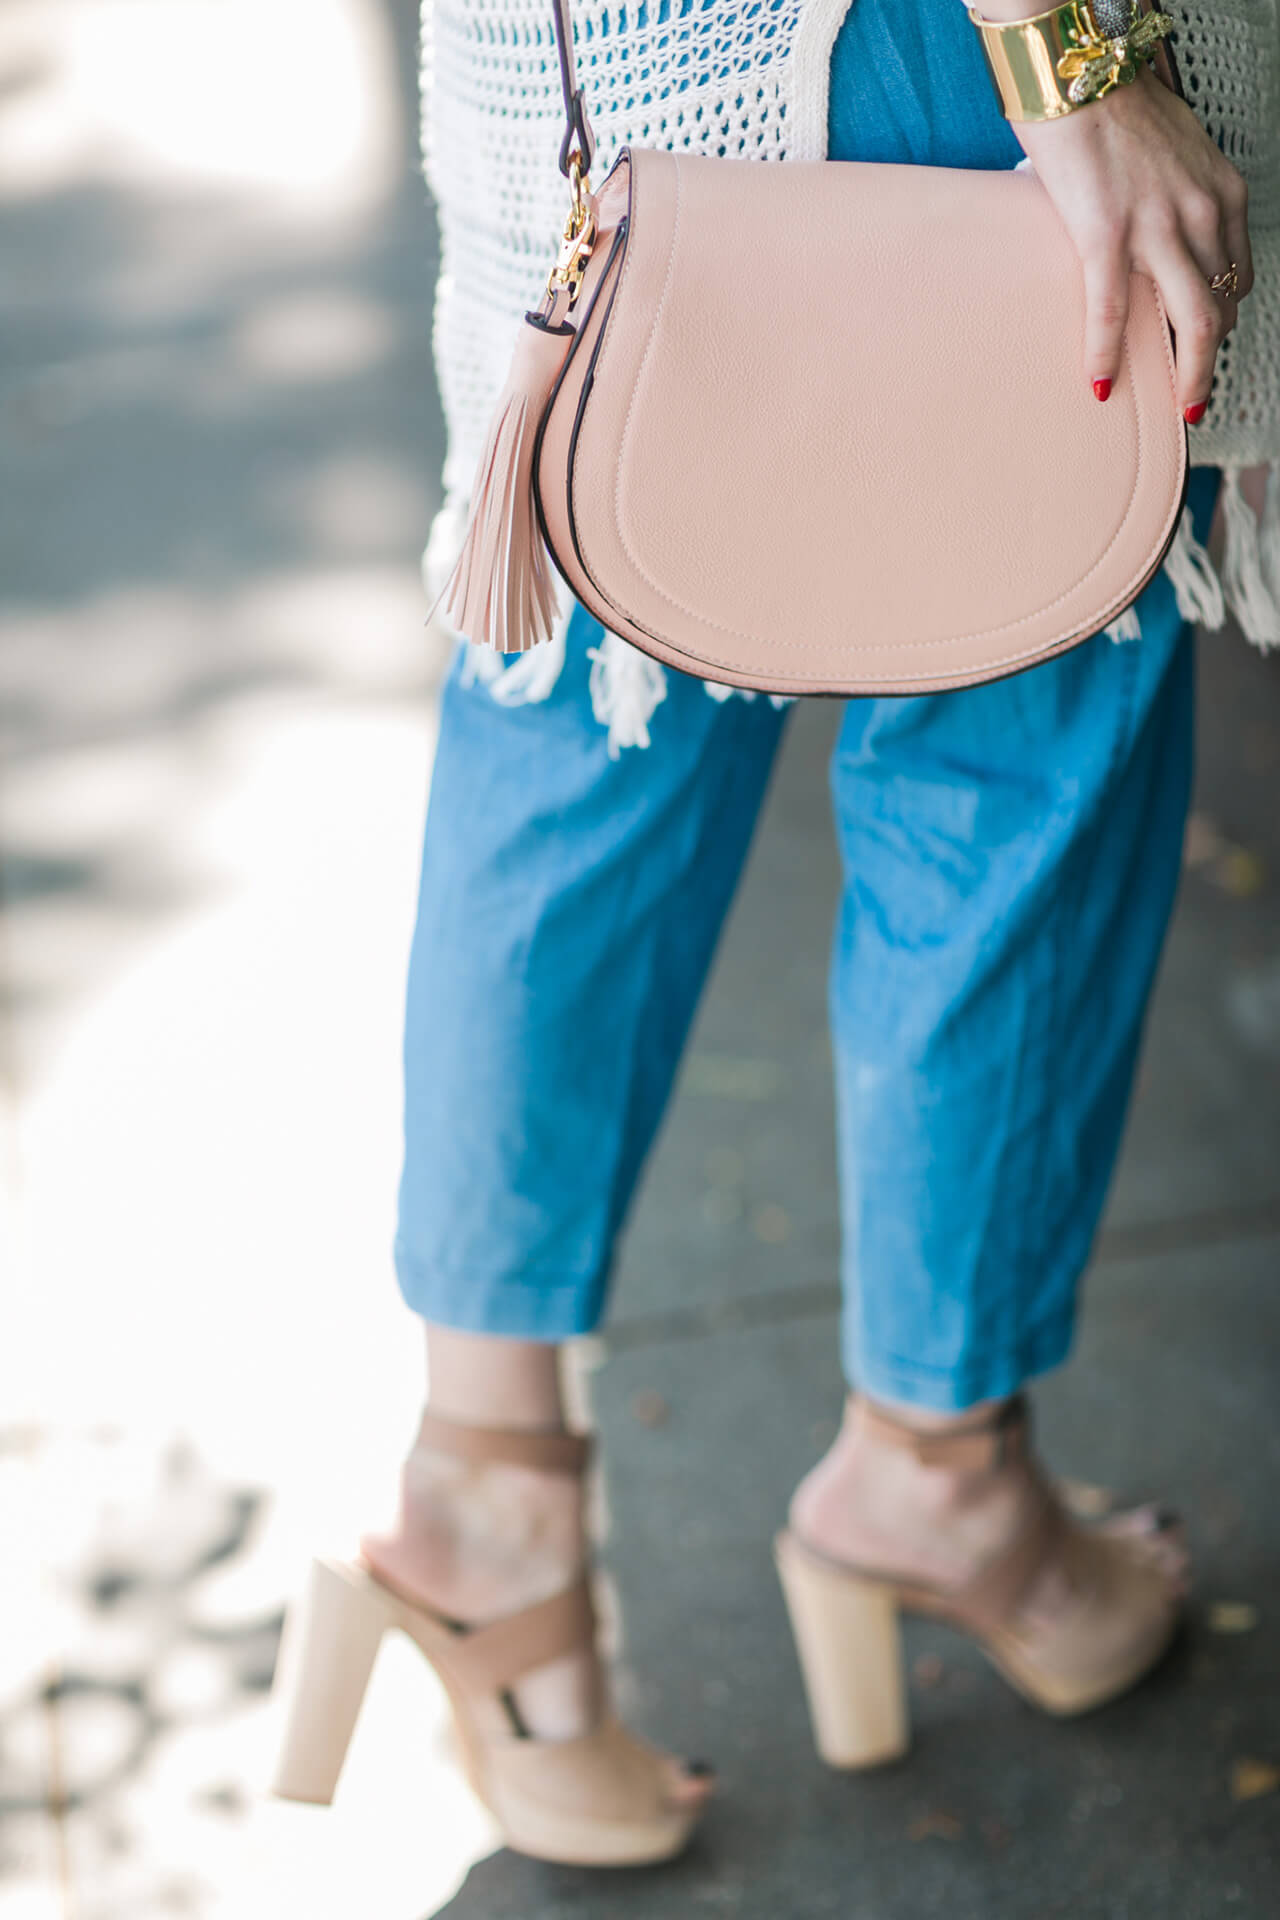 a cute pink saddle bag with tassels for under $35!